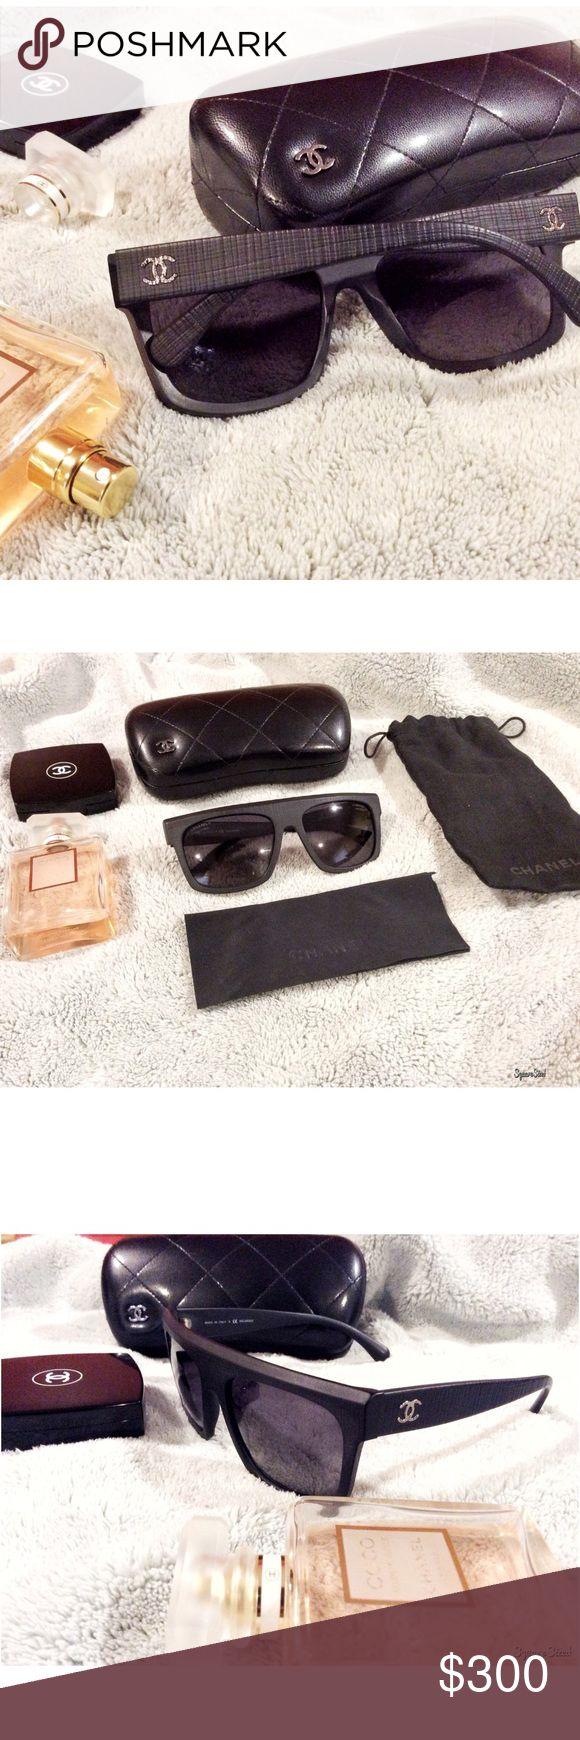 New Chanel Flat Top Sunglasses Authentic. This is my lowest price because these are brand new. Worn once and I'd rather have a different shape. Polarized. Comes w/ hard case, sleeper bag & dust cloth. I still have tag as well. This style is still selling in boutiques so you can have it at discounted price here. *I personally style all pics, no modeling* NO TRADE. CHANEL Accessories Sunglasses